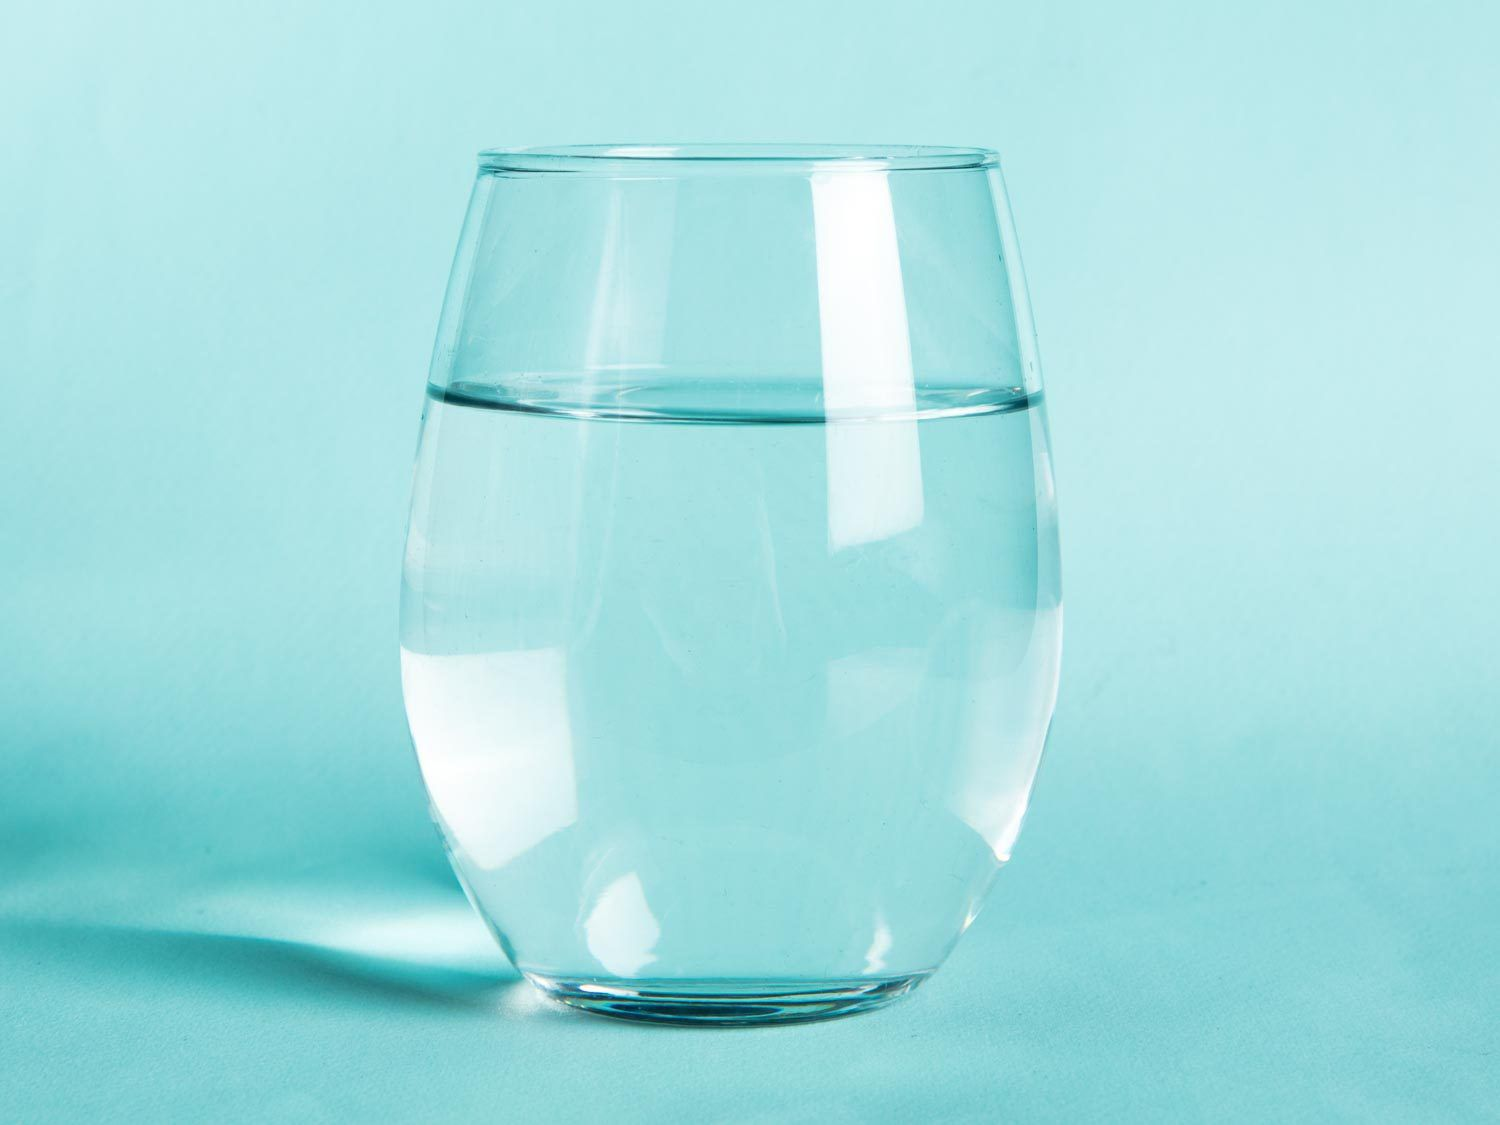 A glass of water against an aqua background